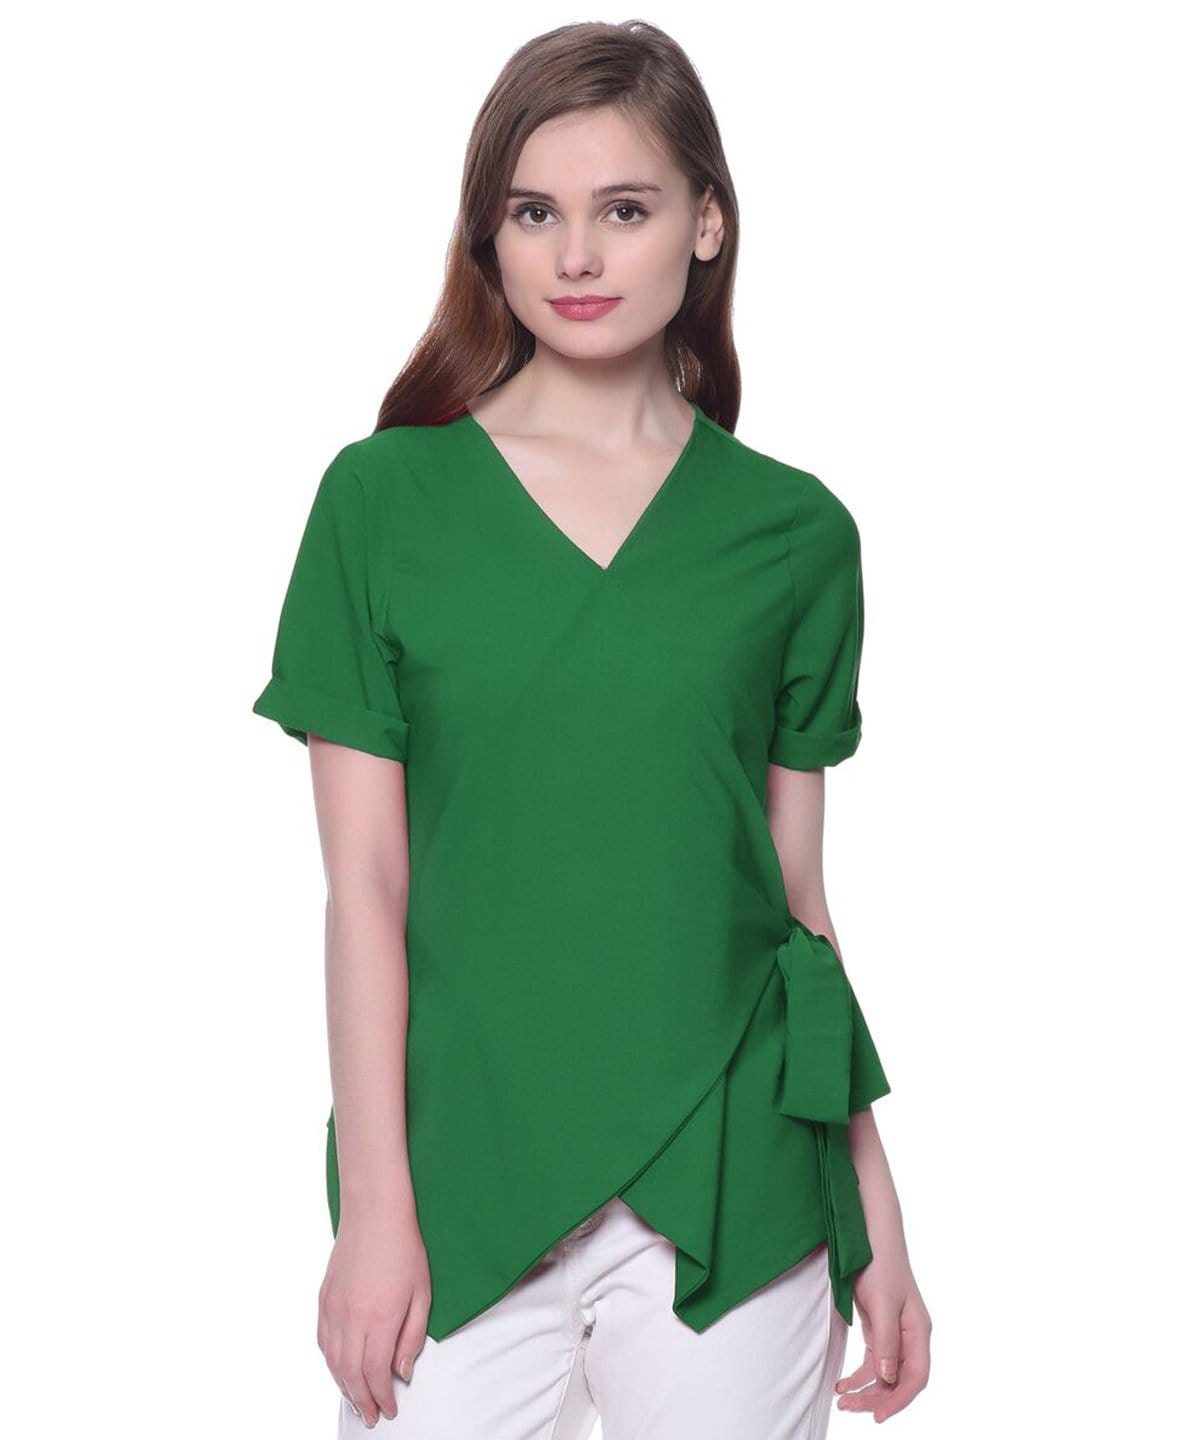 Uptownie Plus Solid Green Crepe Wrap Top 1 clearance sale